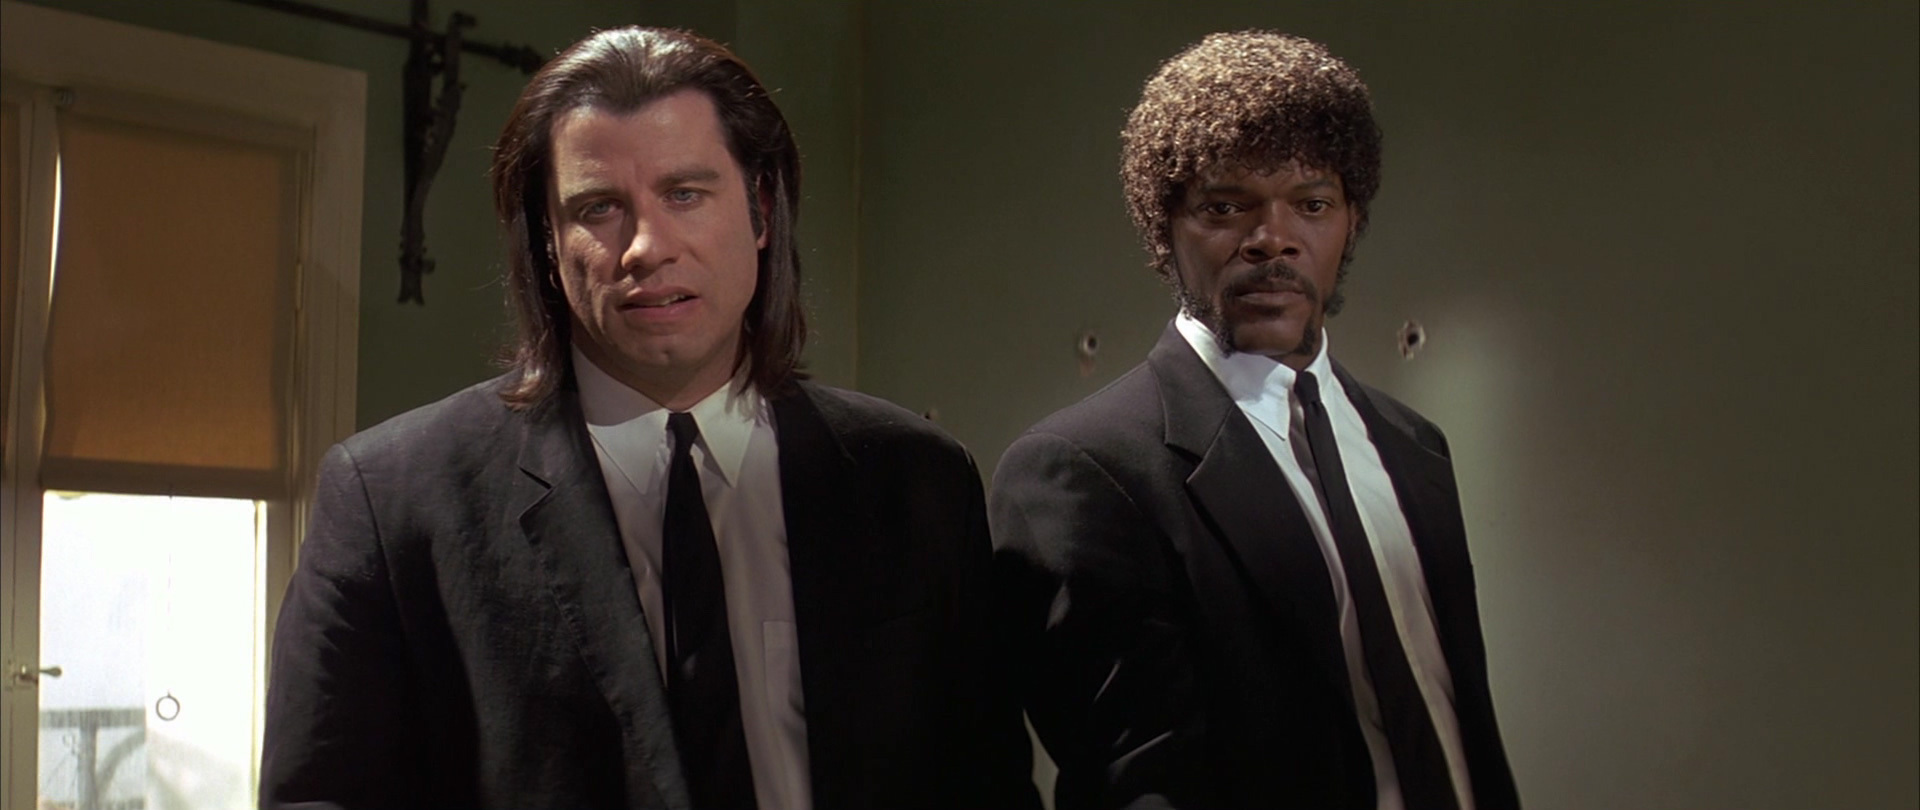 an analysis of pulp fiction